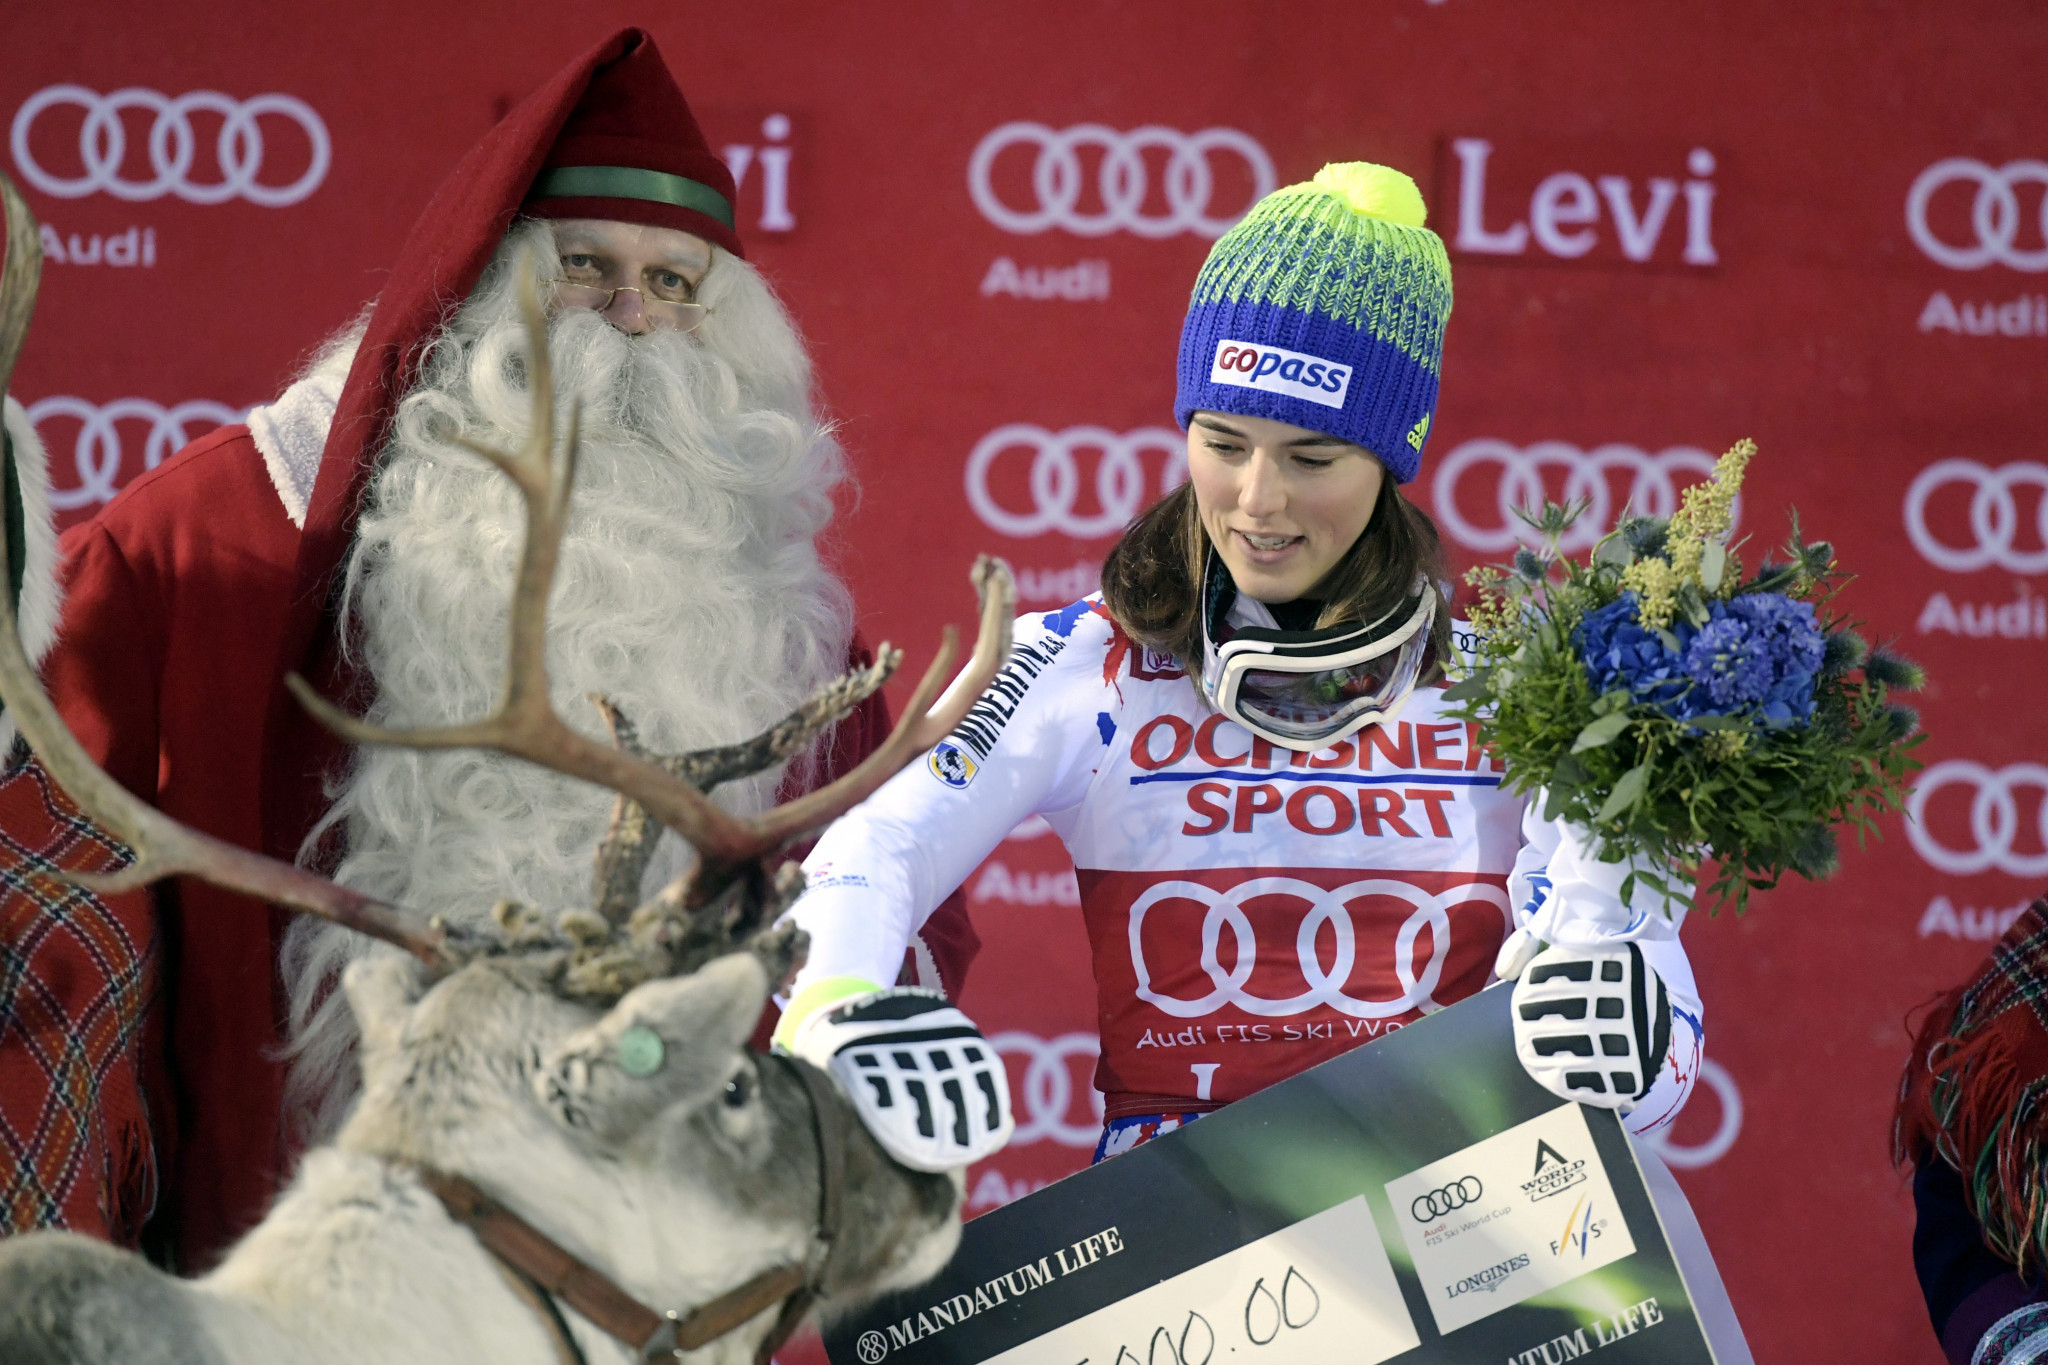 Vlhova edges Shiffrin in World Cup slalom opener